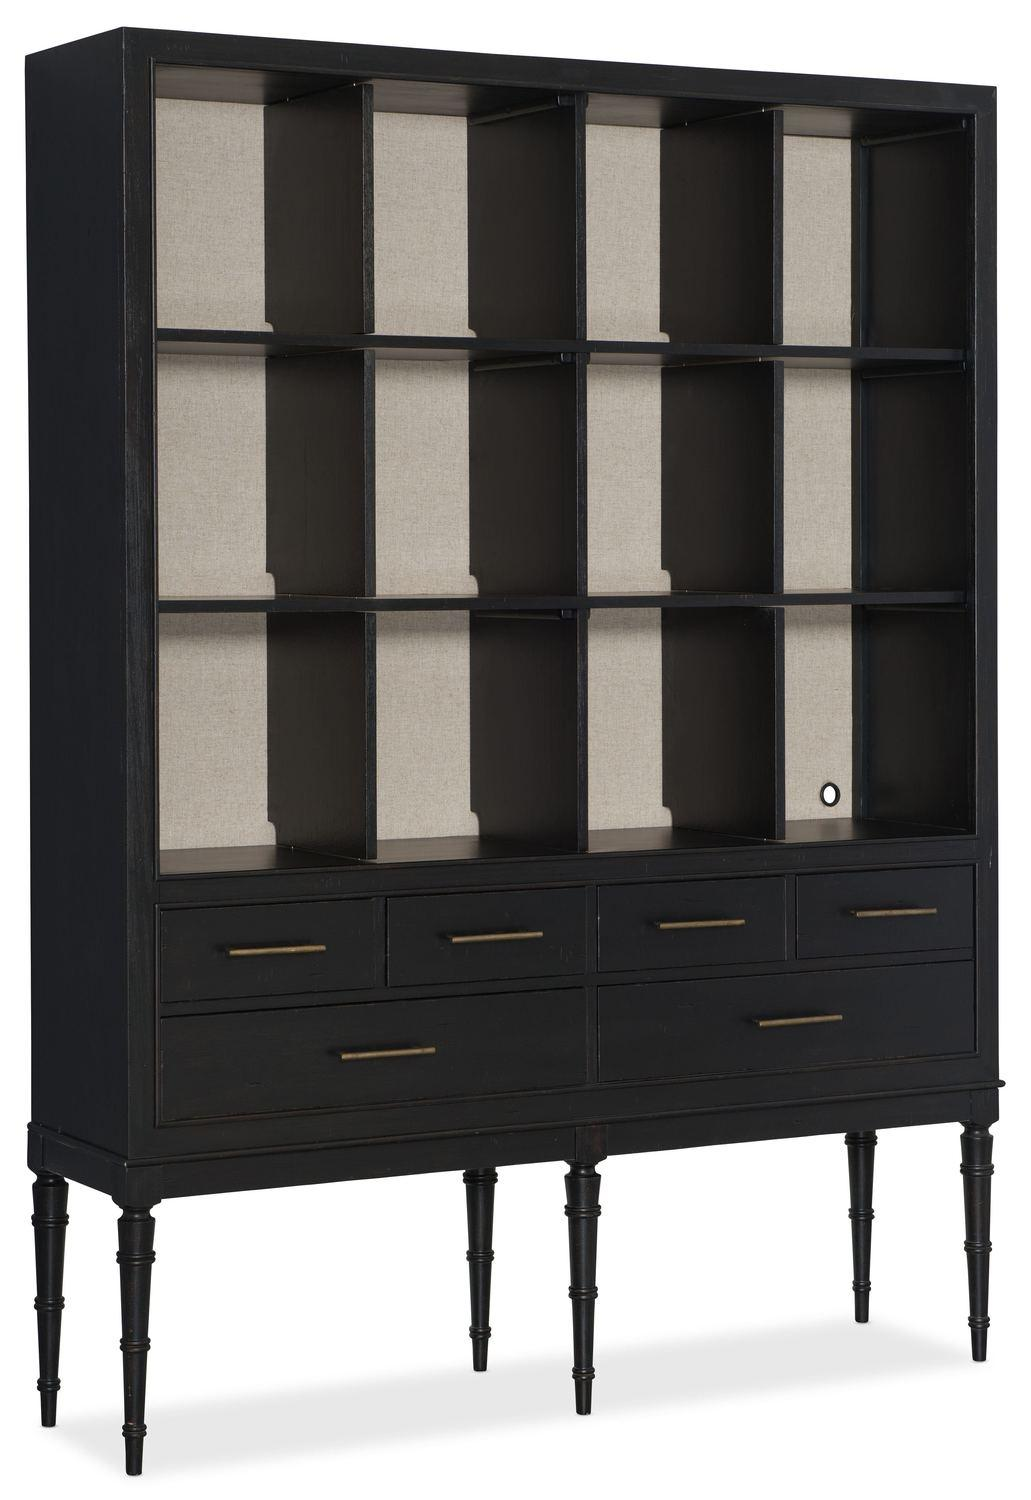 Hooker FurnitureHome Office Tall Bookcase